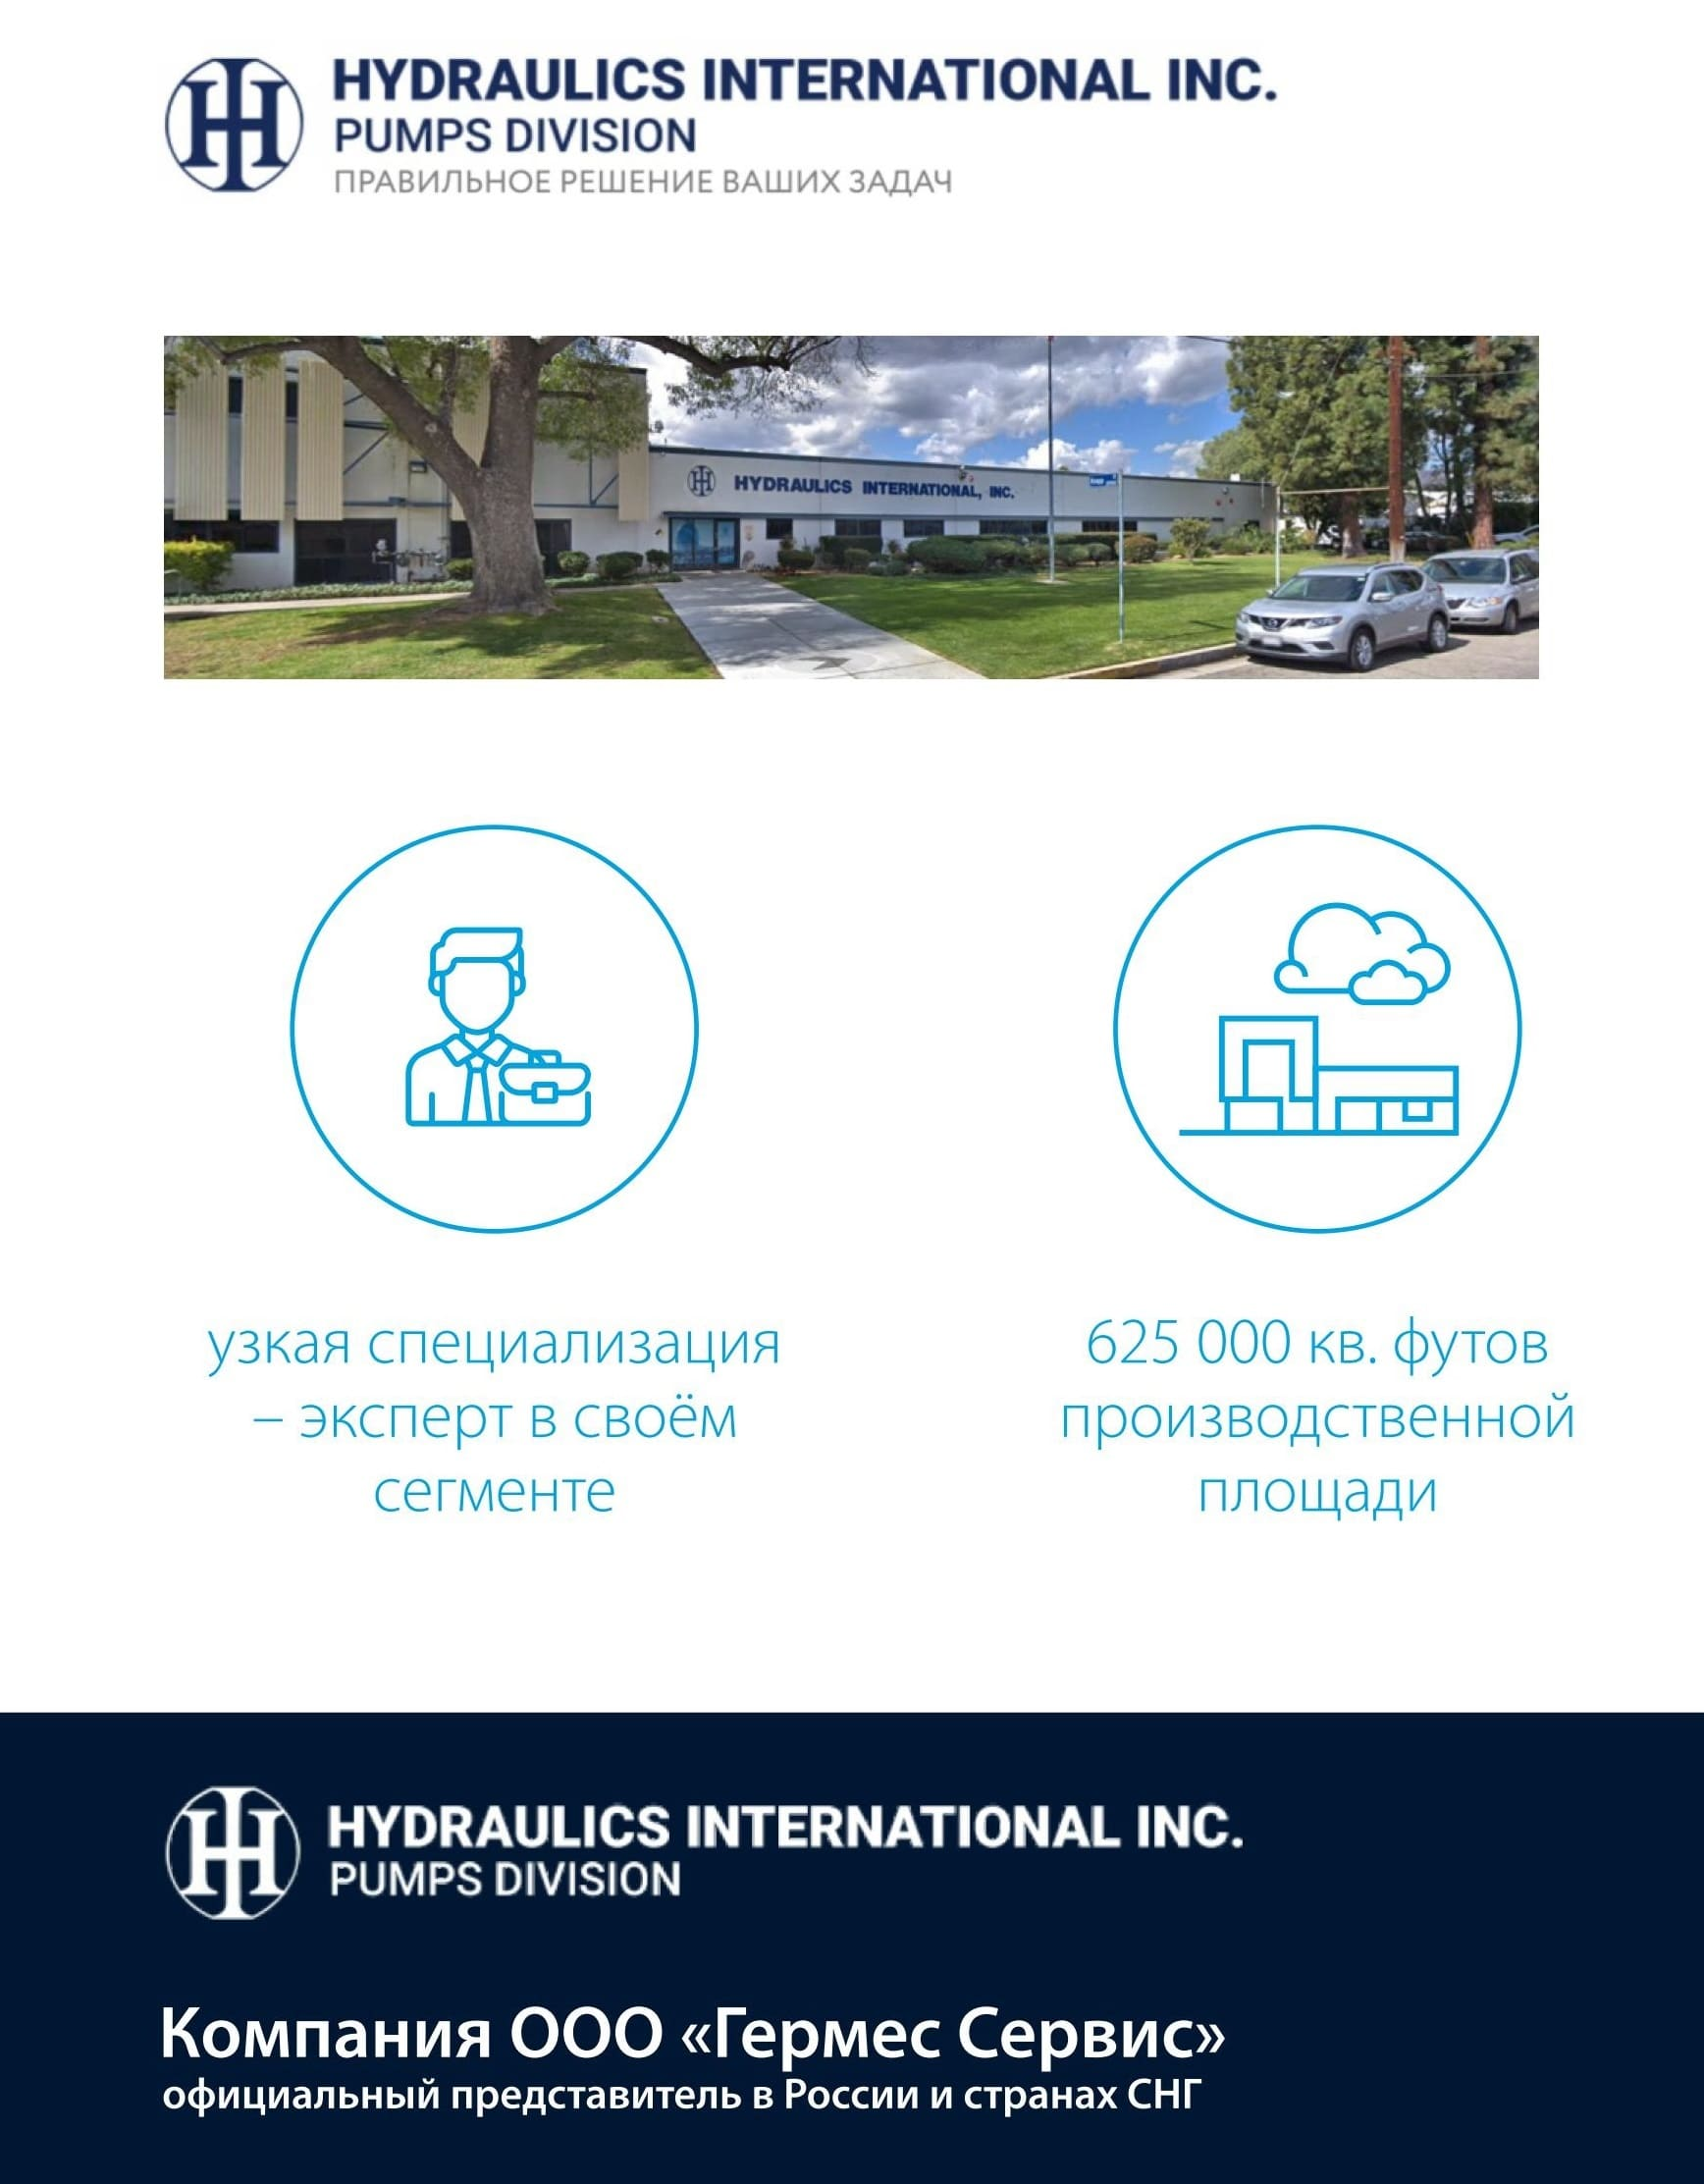 Brief overview of Hydraulics International products-brochure in Russian